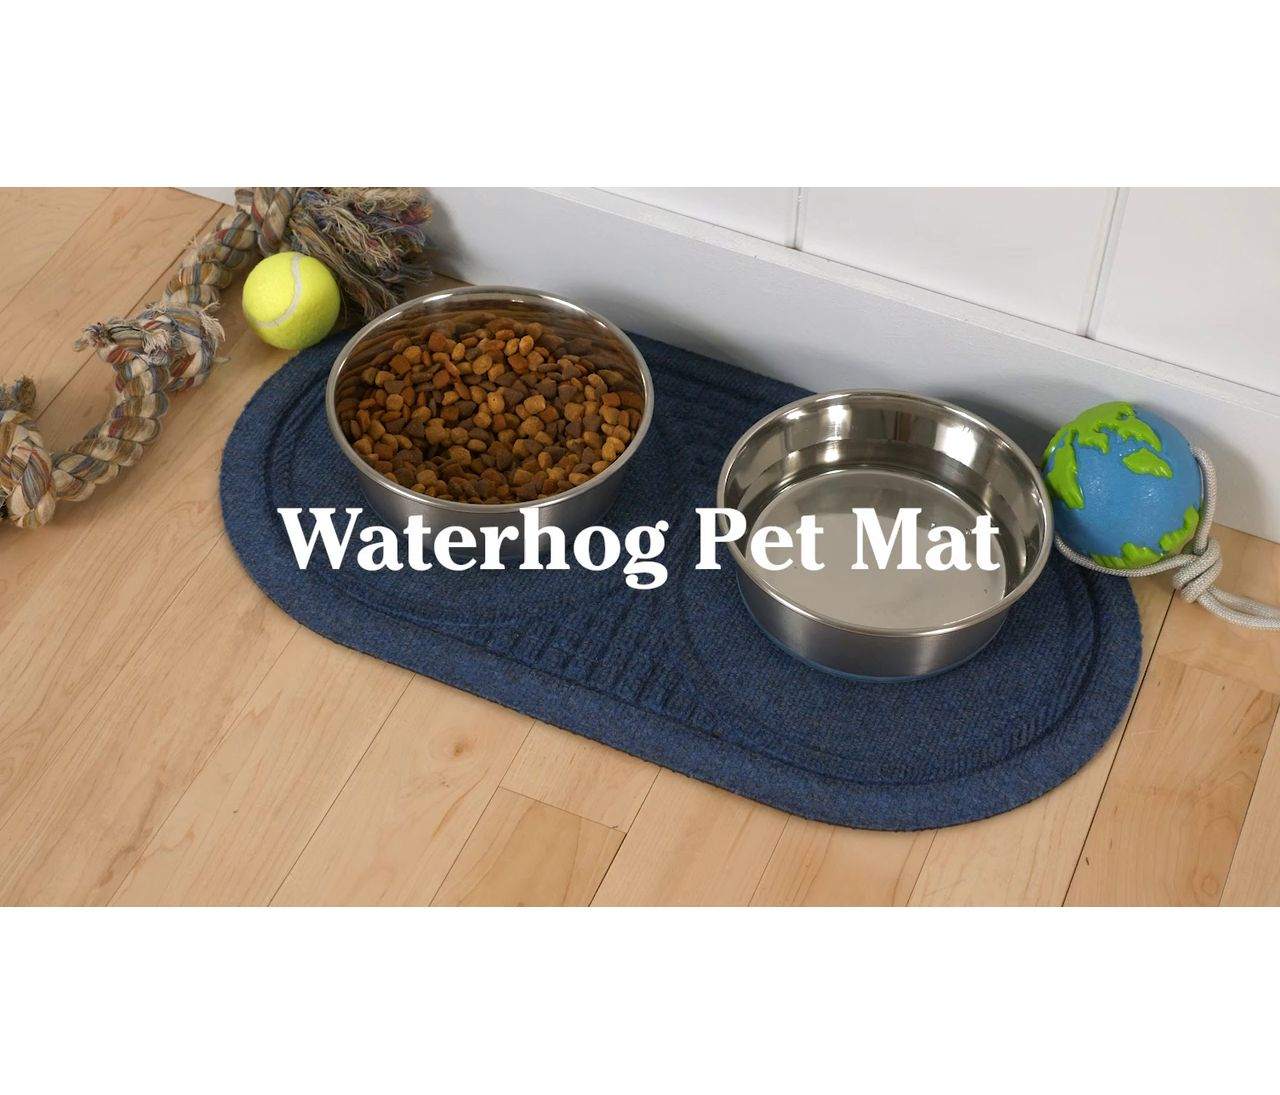 Video: Waterhog Pet Mat Placemat